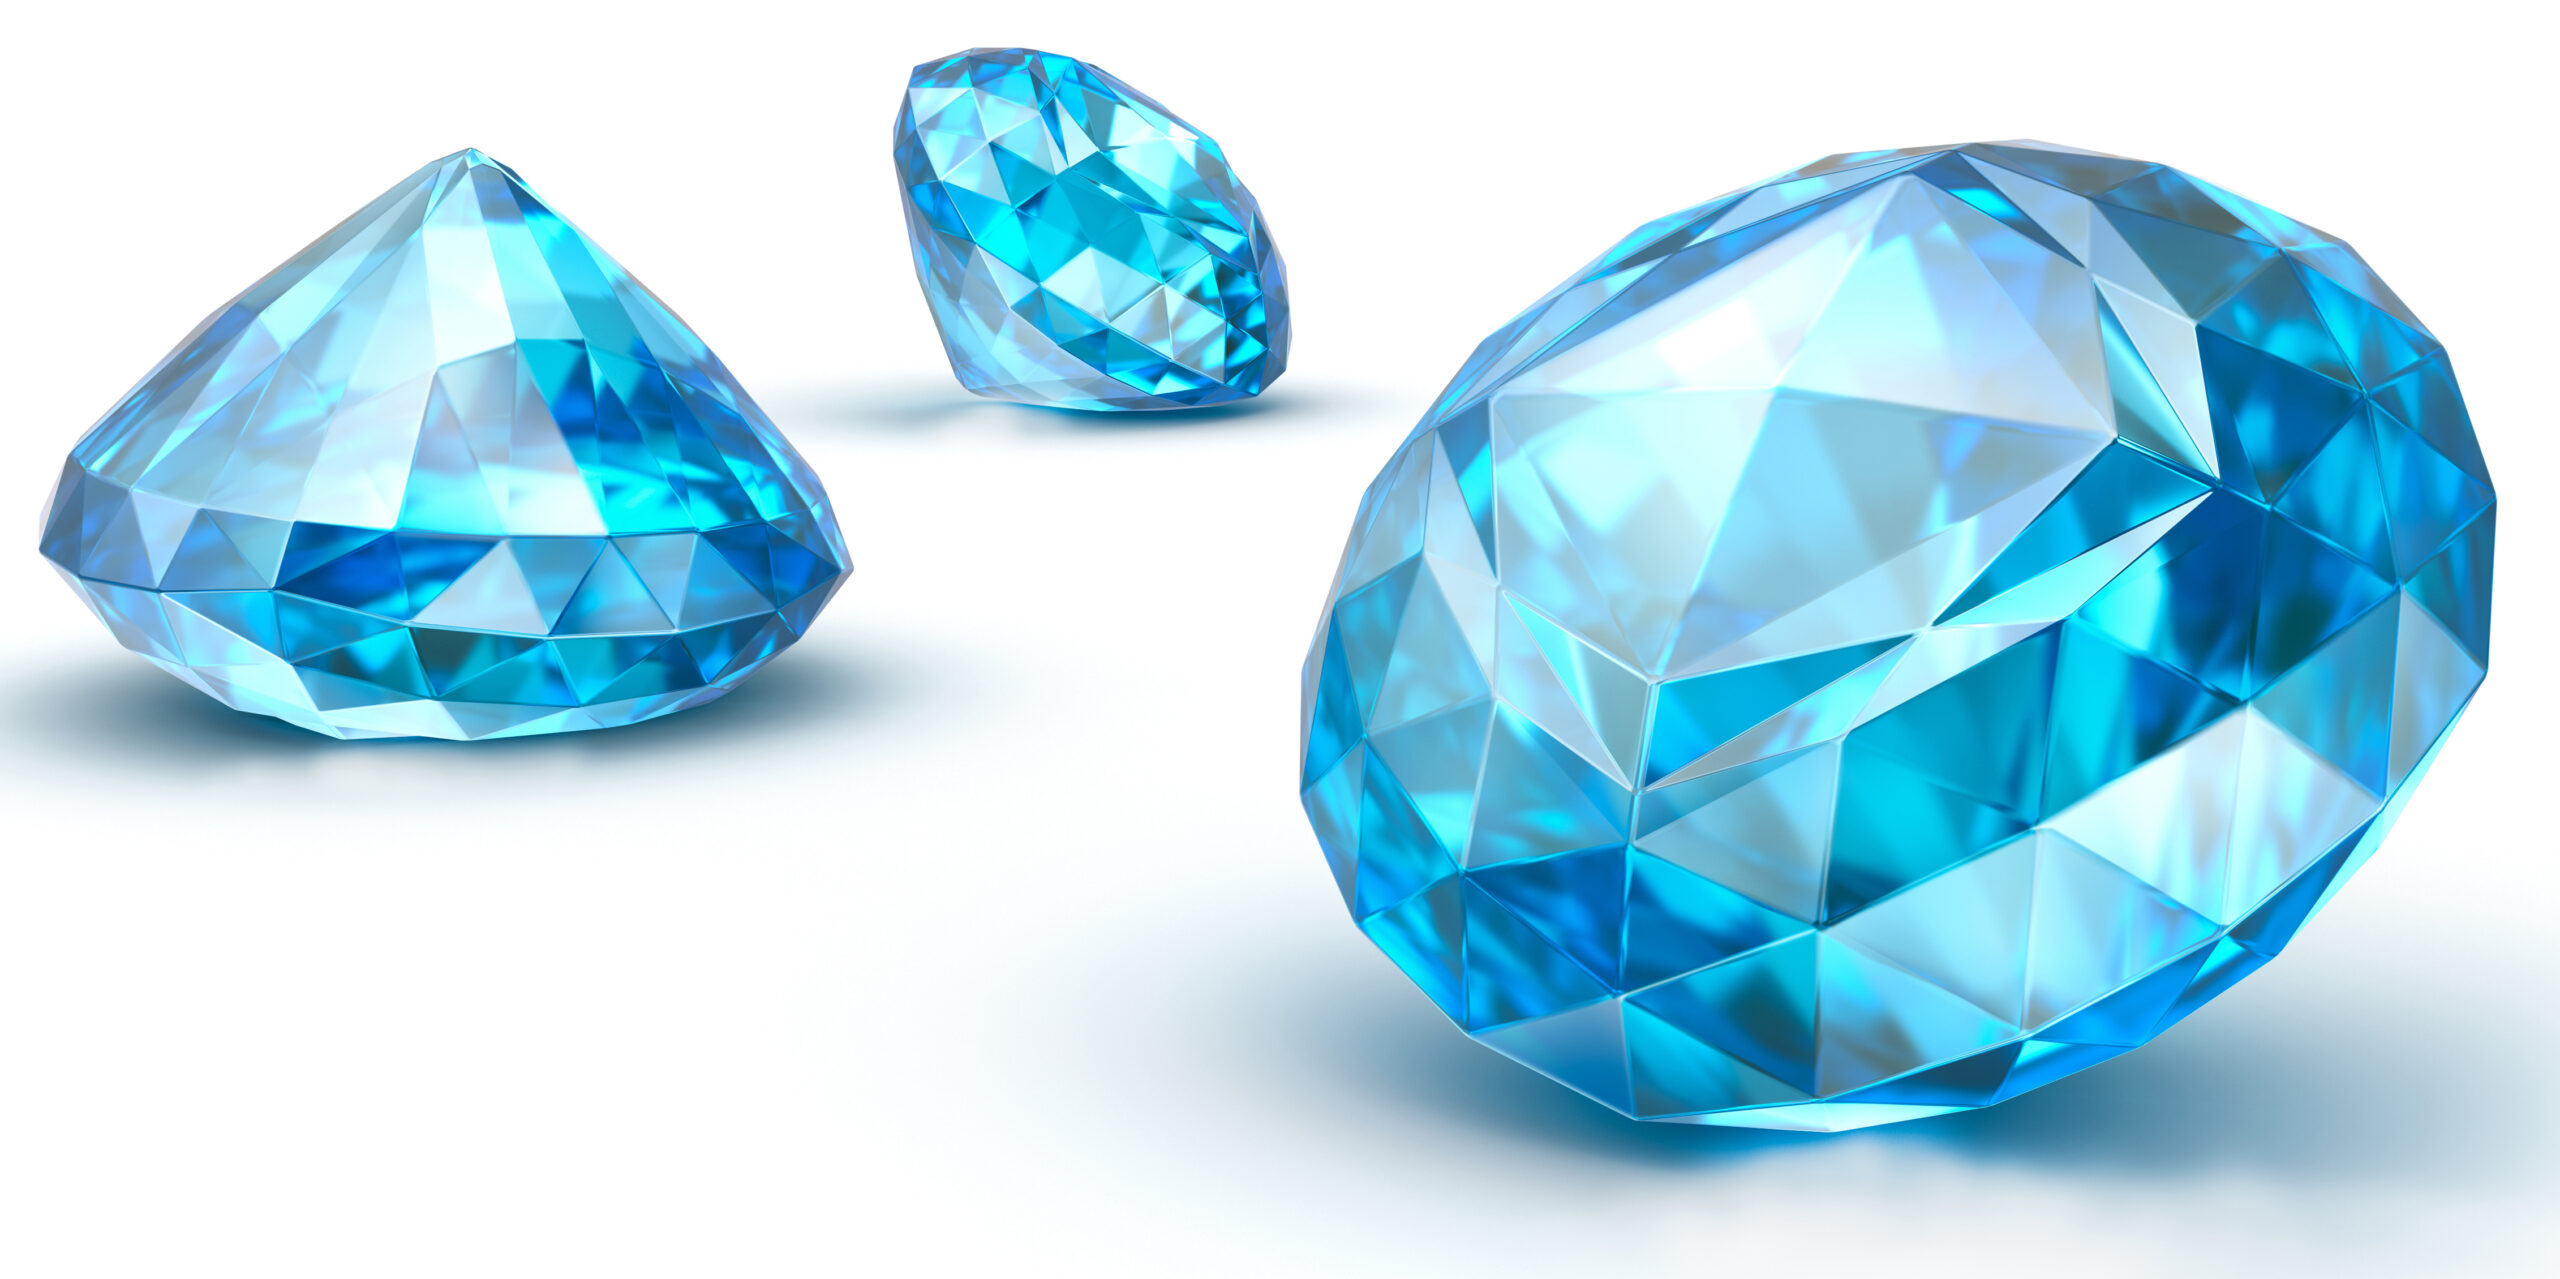 Topaz Meanings, Properties and Uses